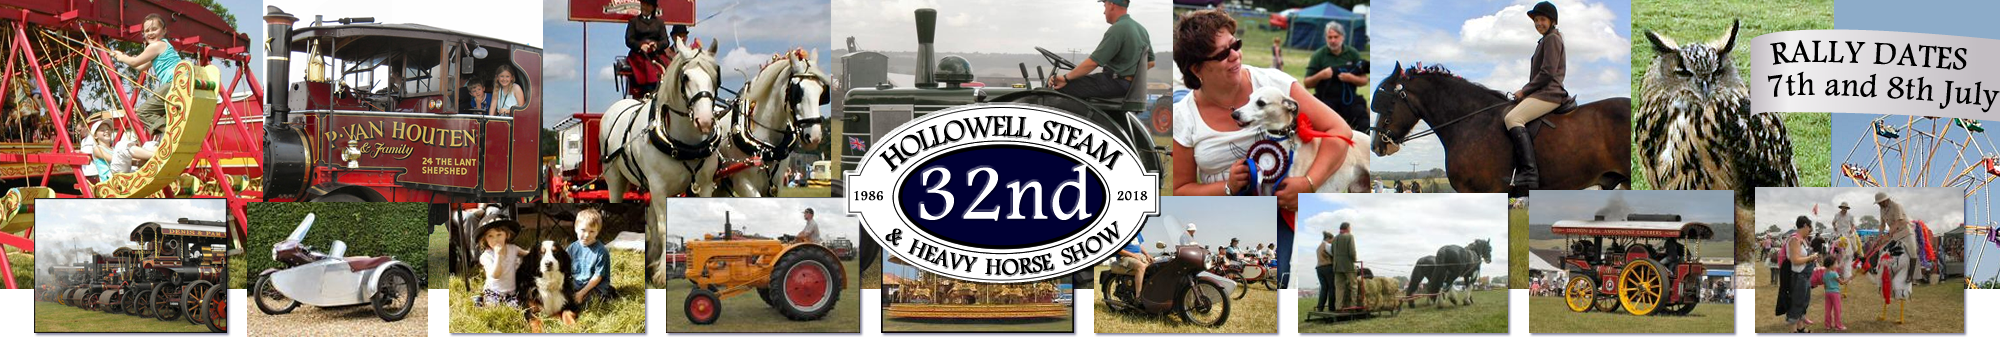 Hollowell Steam Rally Northants.